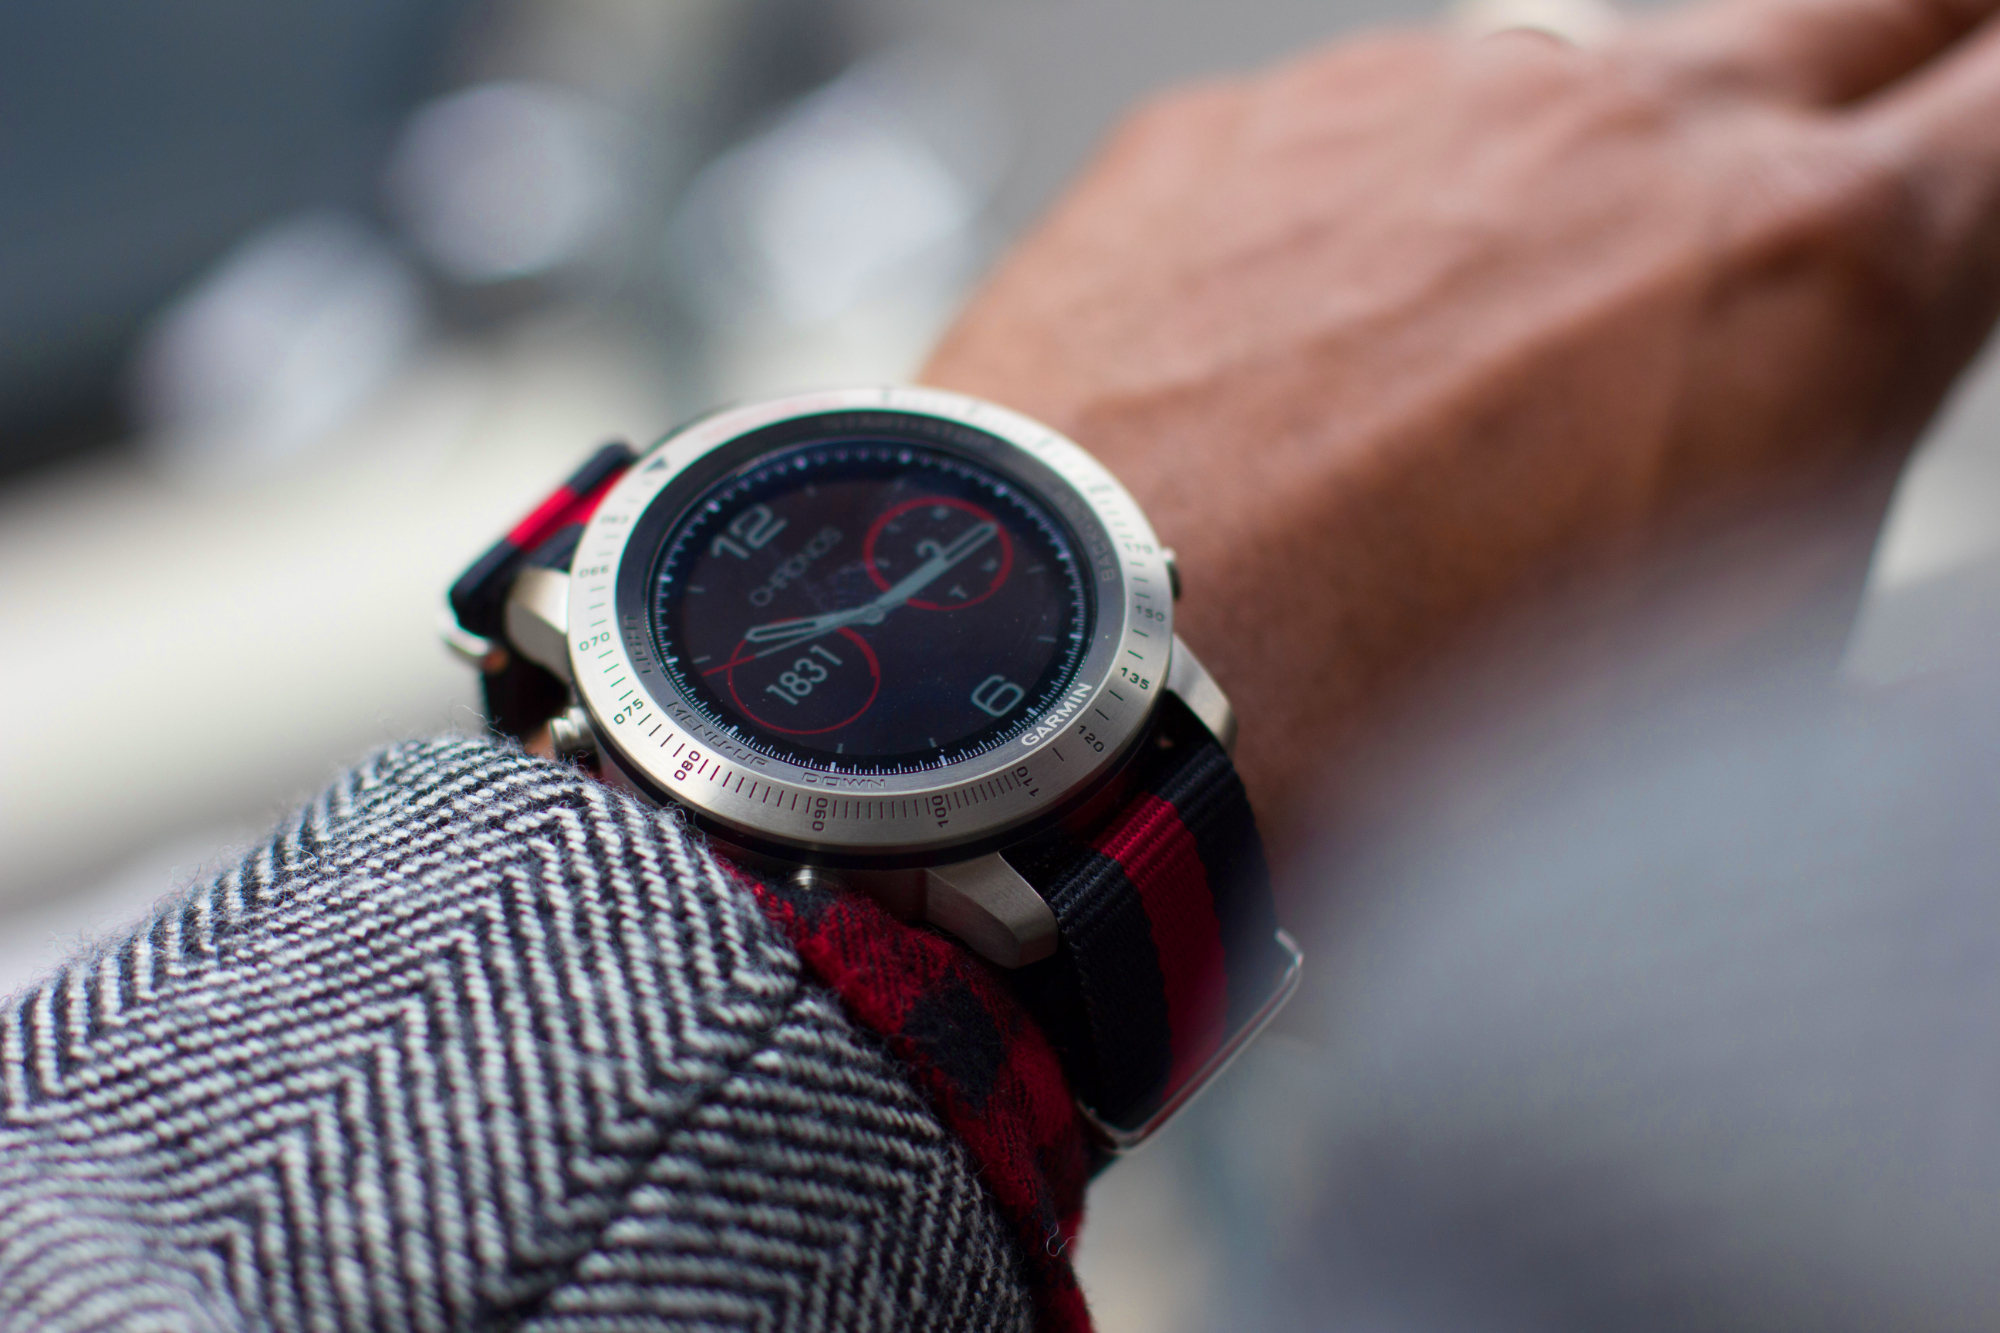 Sabir M. Peele of Men's Style Pro Fenix Chronos Garmin Smartwatch Review